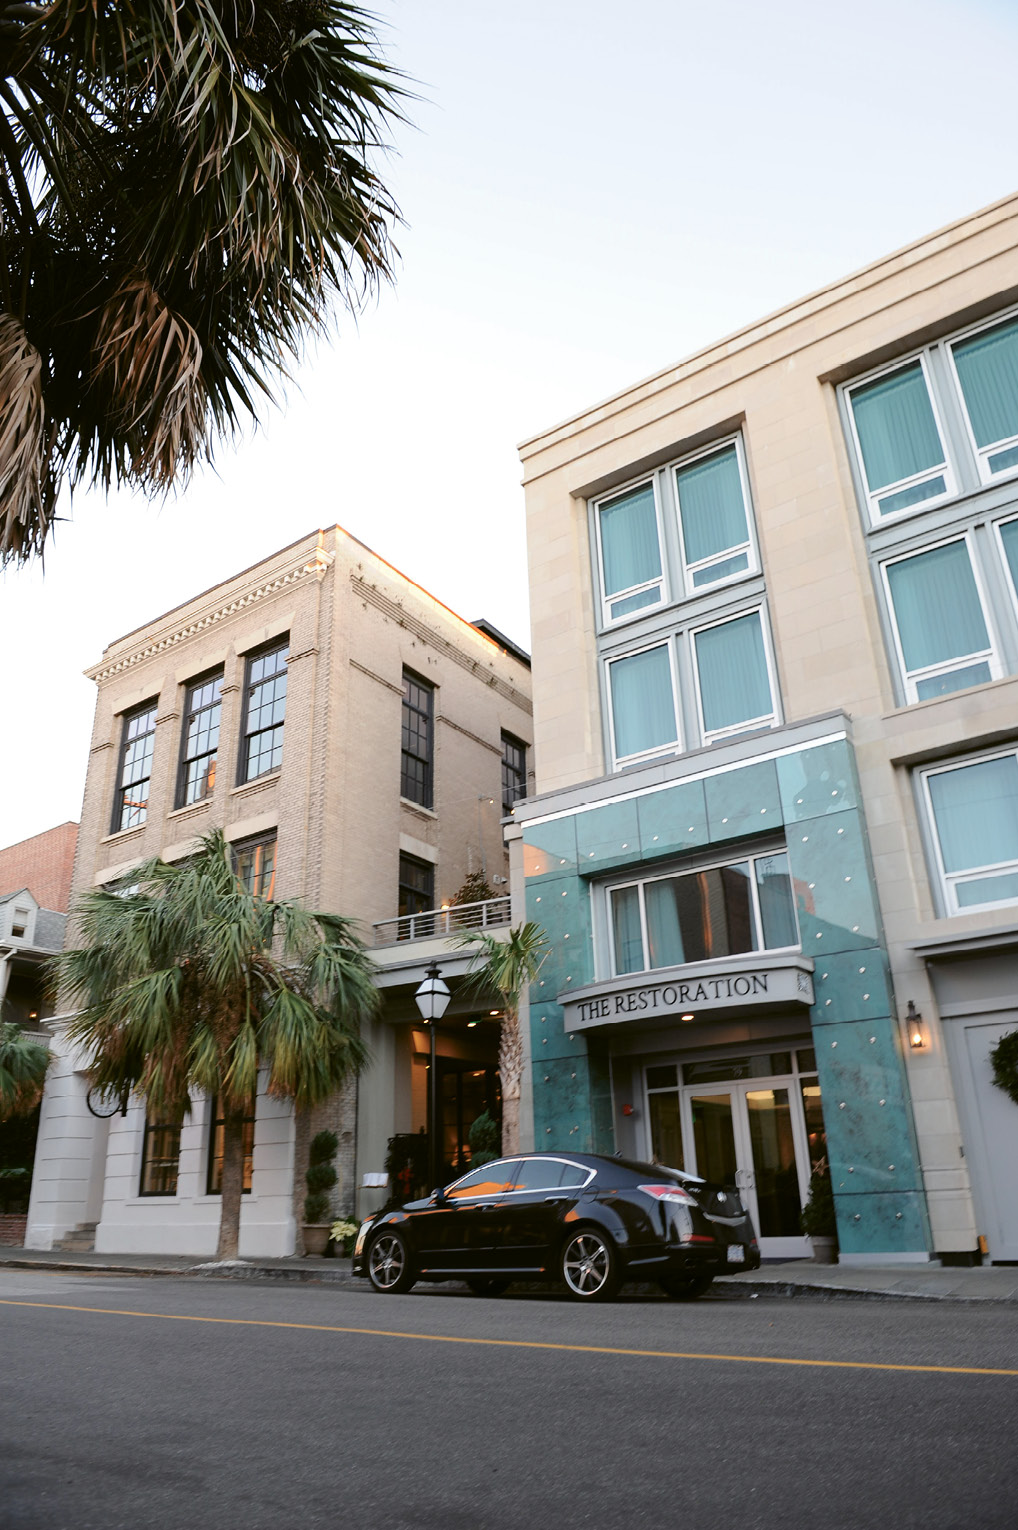 Recent additions to the accommodations roster include The Restoration, a revamped former condo timeshare